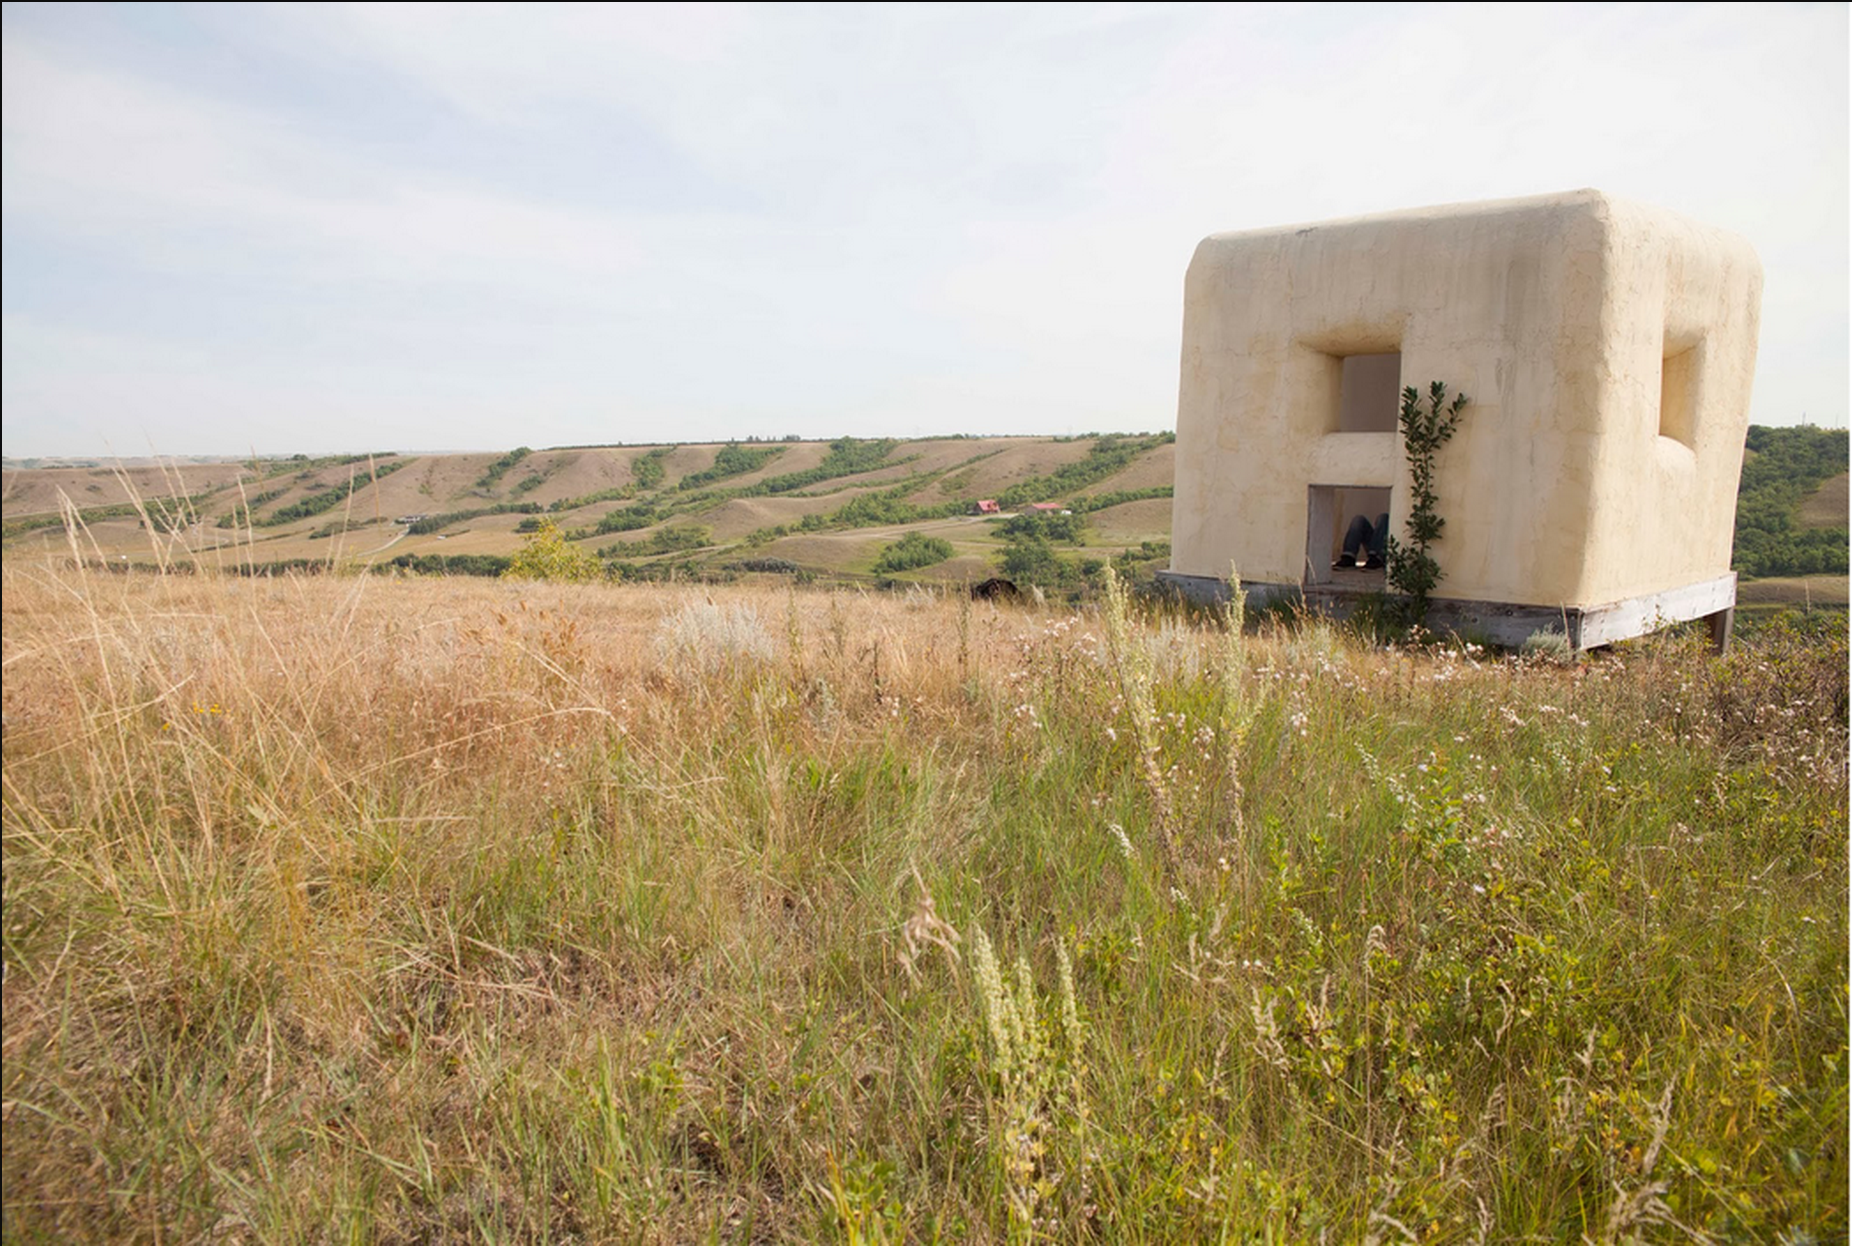 Participant Rick Moody in the Straw Bale Observatory built by Dennis Evans in Saskatchewan, Canada.Photograph by Ayden L. M. Grout